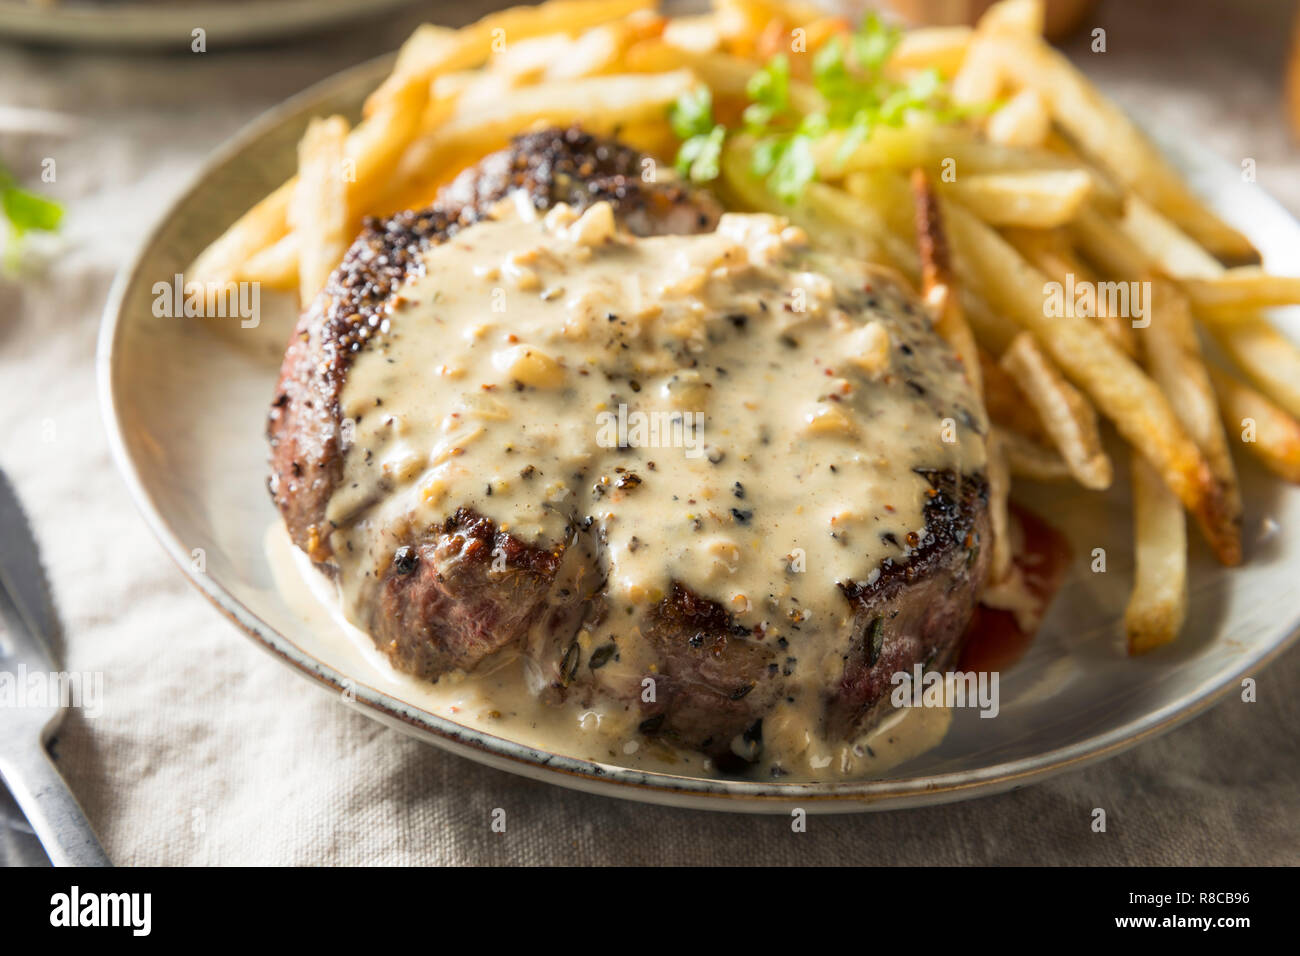 Homemade Steak Au Poivre with Pepper Sauce - Stock Image